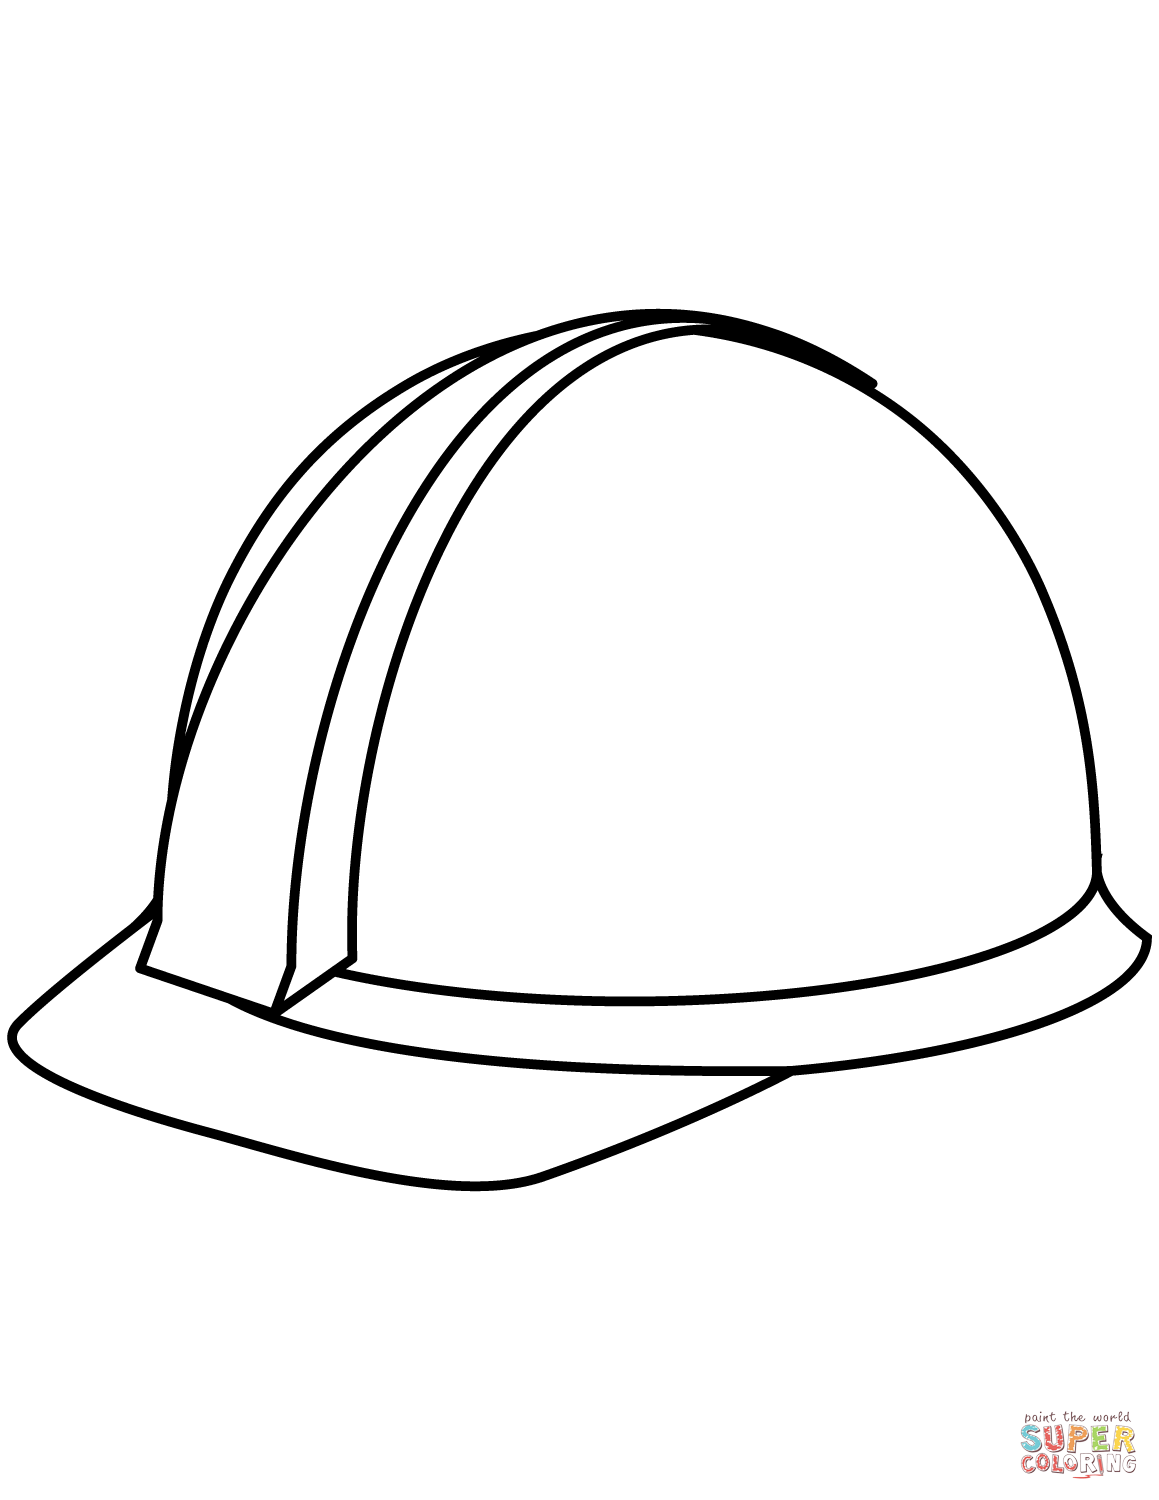 1159x1500 Hard Hat Coloring Page Free Printable Coloring Pages